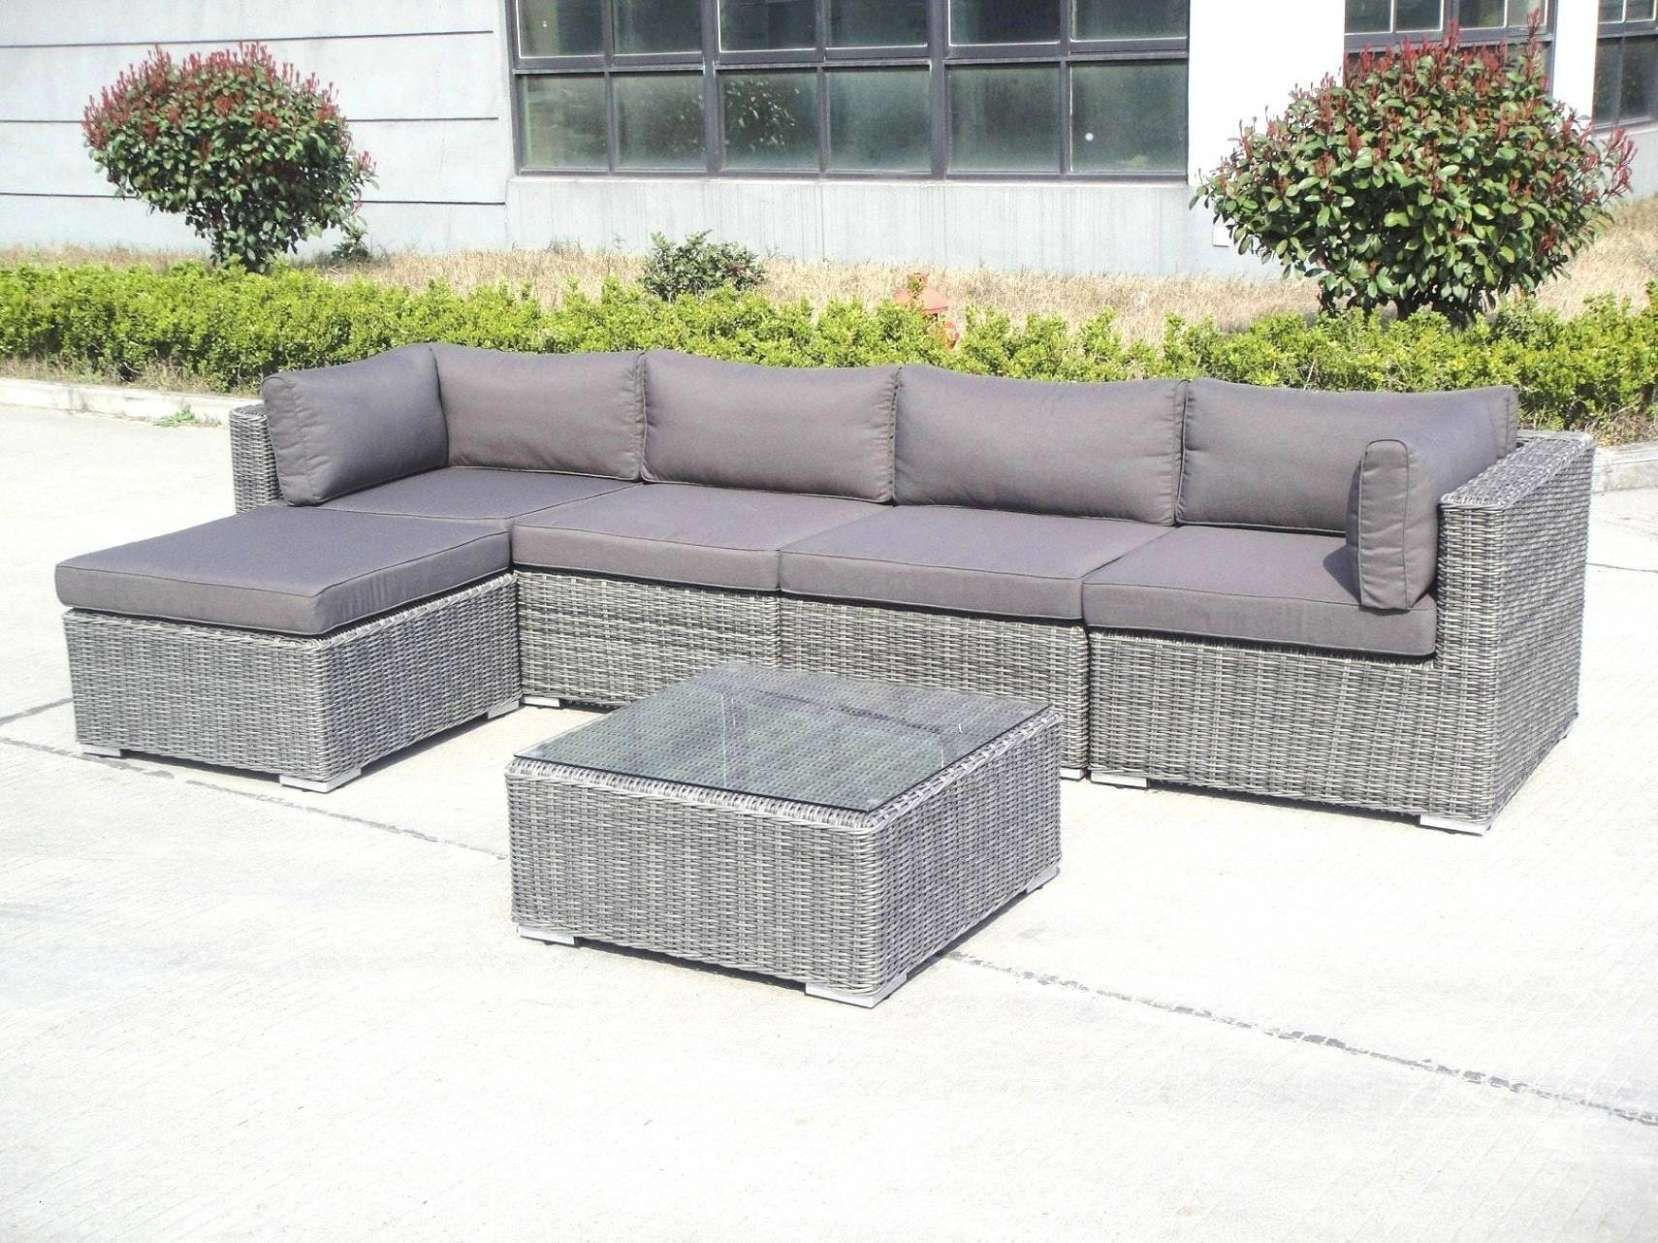 Möbel Und Deko 45 Neu Balkontisch Günstig Galerie Garden Furniture Sets Outdoor Decor Garden Furniture